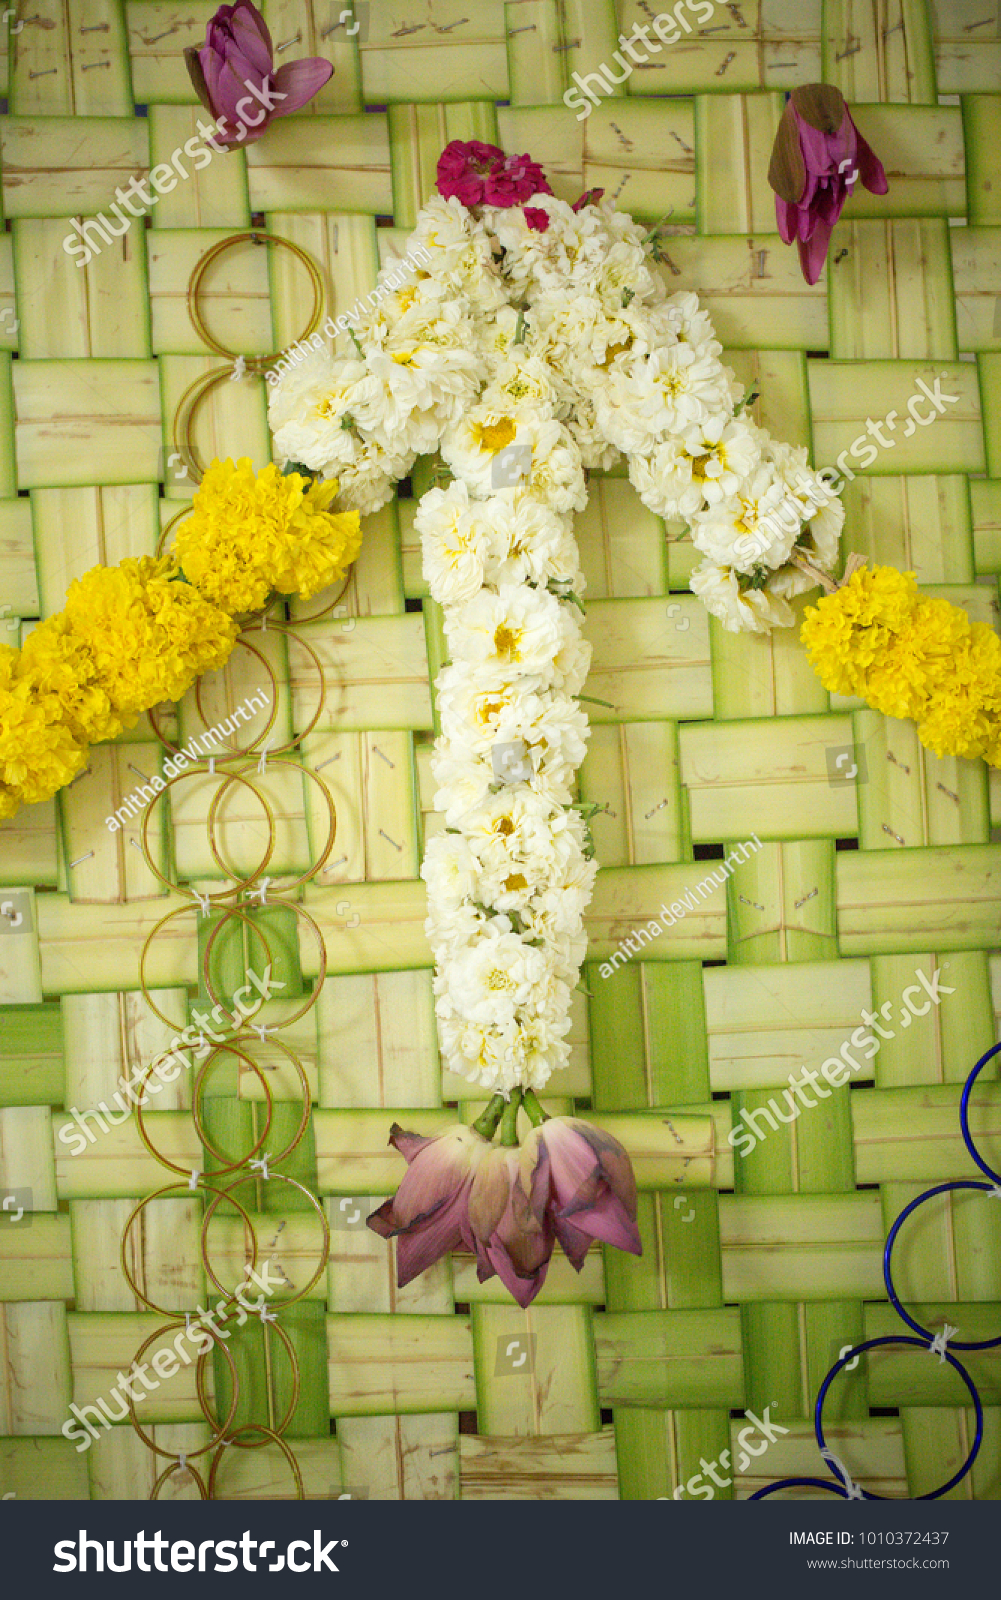 South Indian Baby Shower Decorations : south, indian, shower, decorations, South, Indian, Decoration, Shower, Festival, Stock, Photo, (Edit, 1010372437